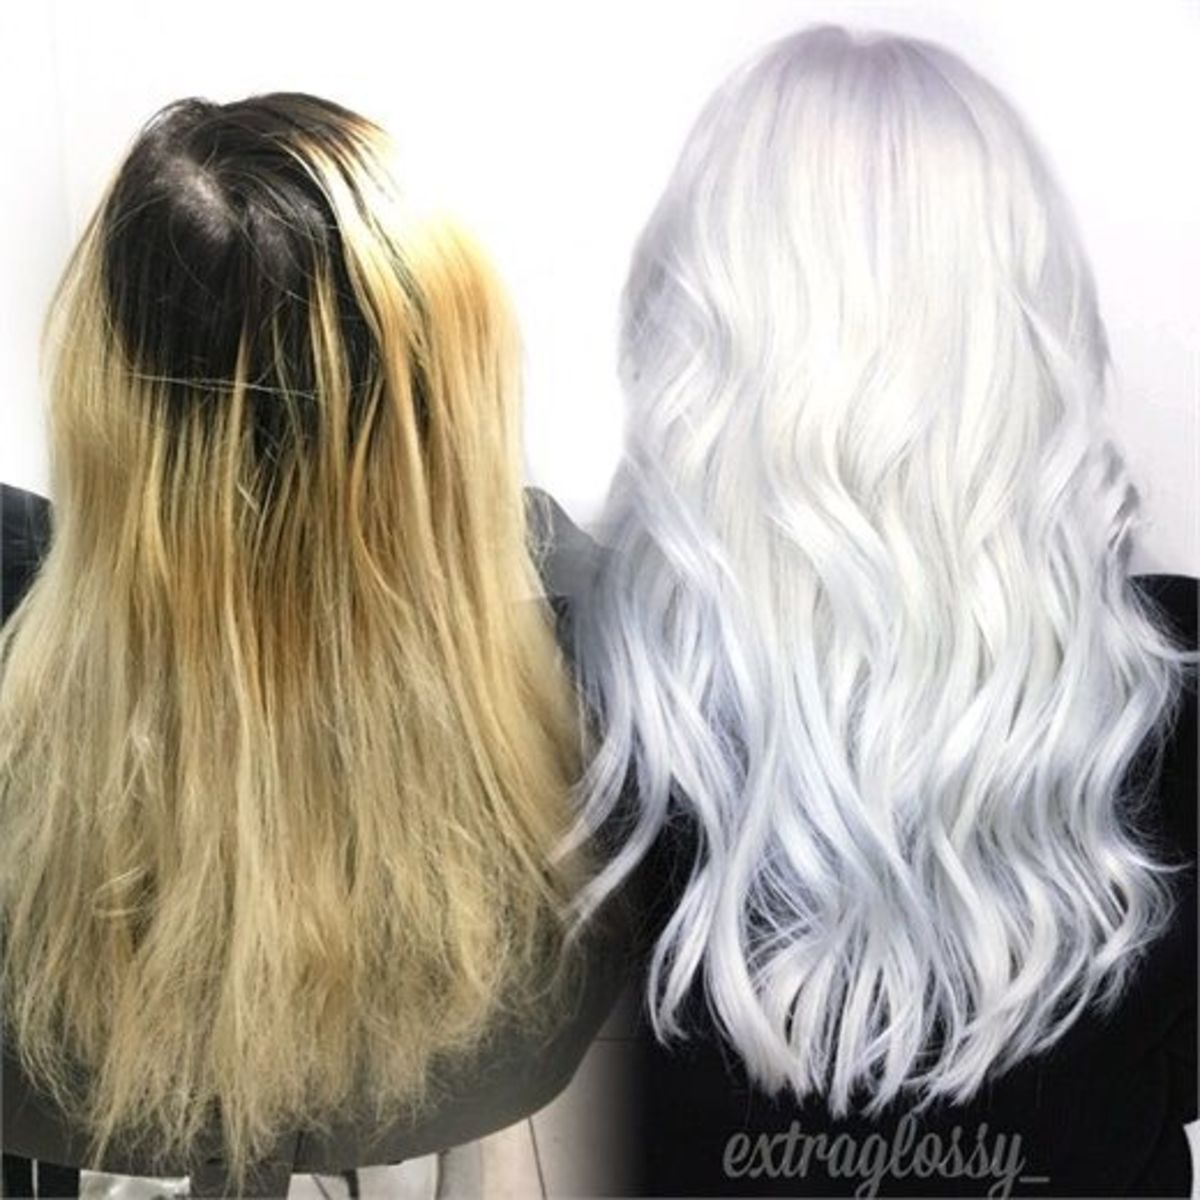 Once you've taken your hair from bleached to white, it'll take a little maintenance to keep it happy.